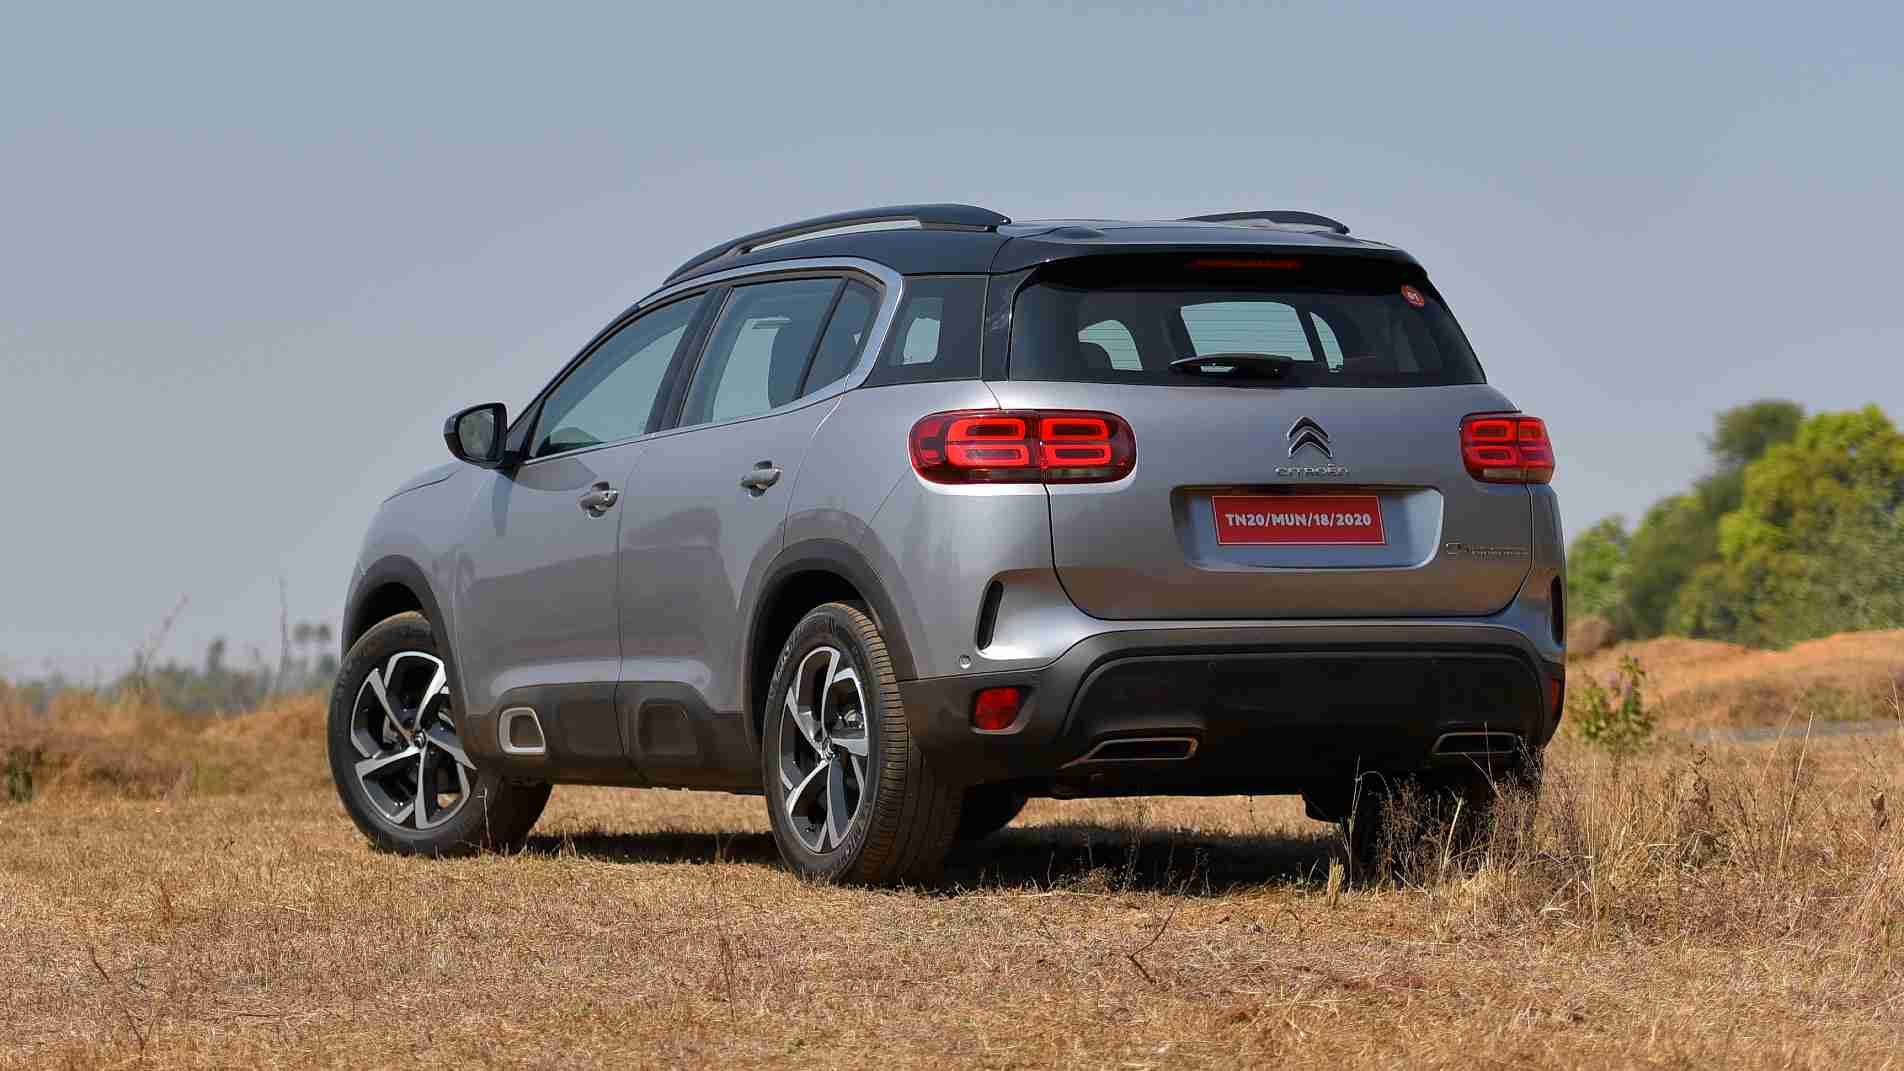 The Citroen C5 Aircross' price in India is expected to be around the Rs 25 - 30 lakh mark. Image: Overdrive/Anis Shaikh